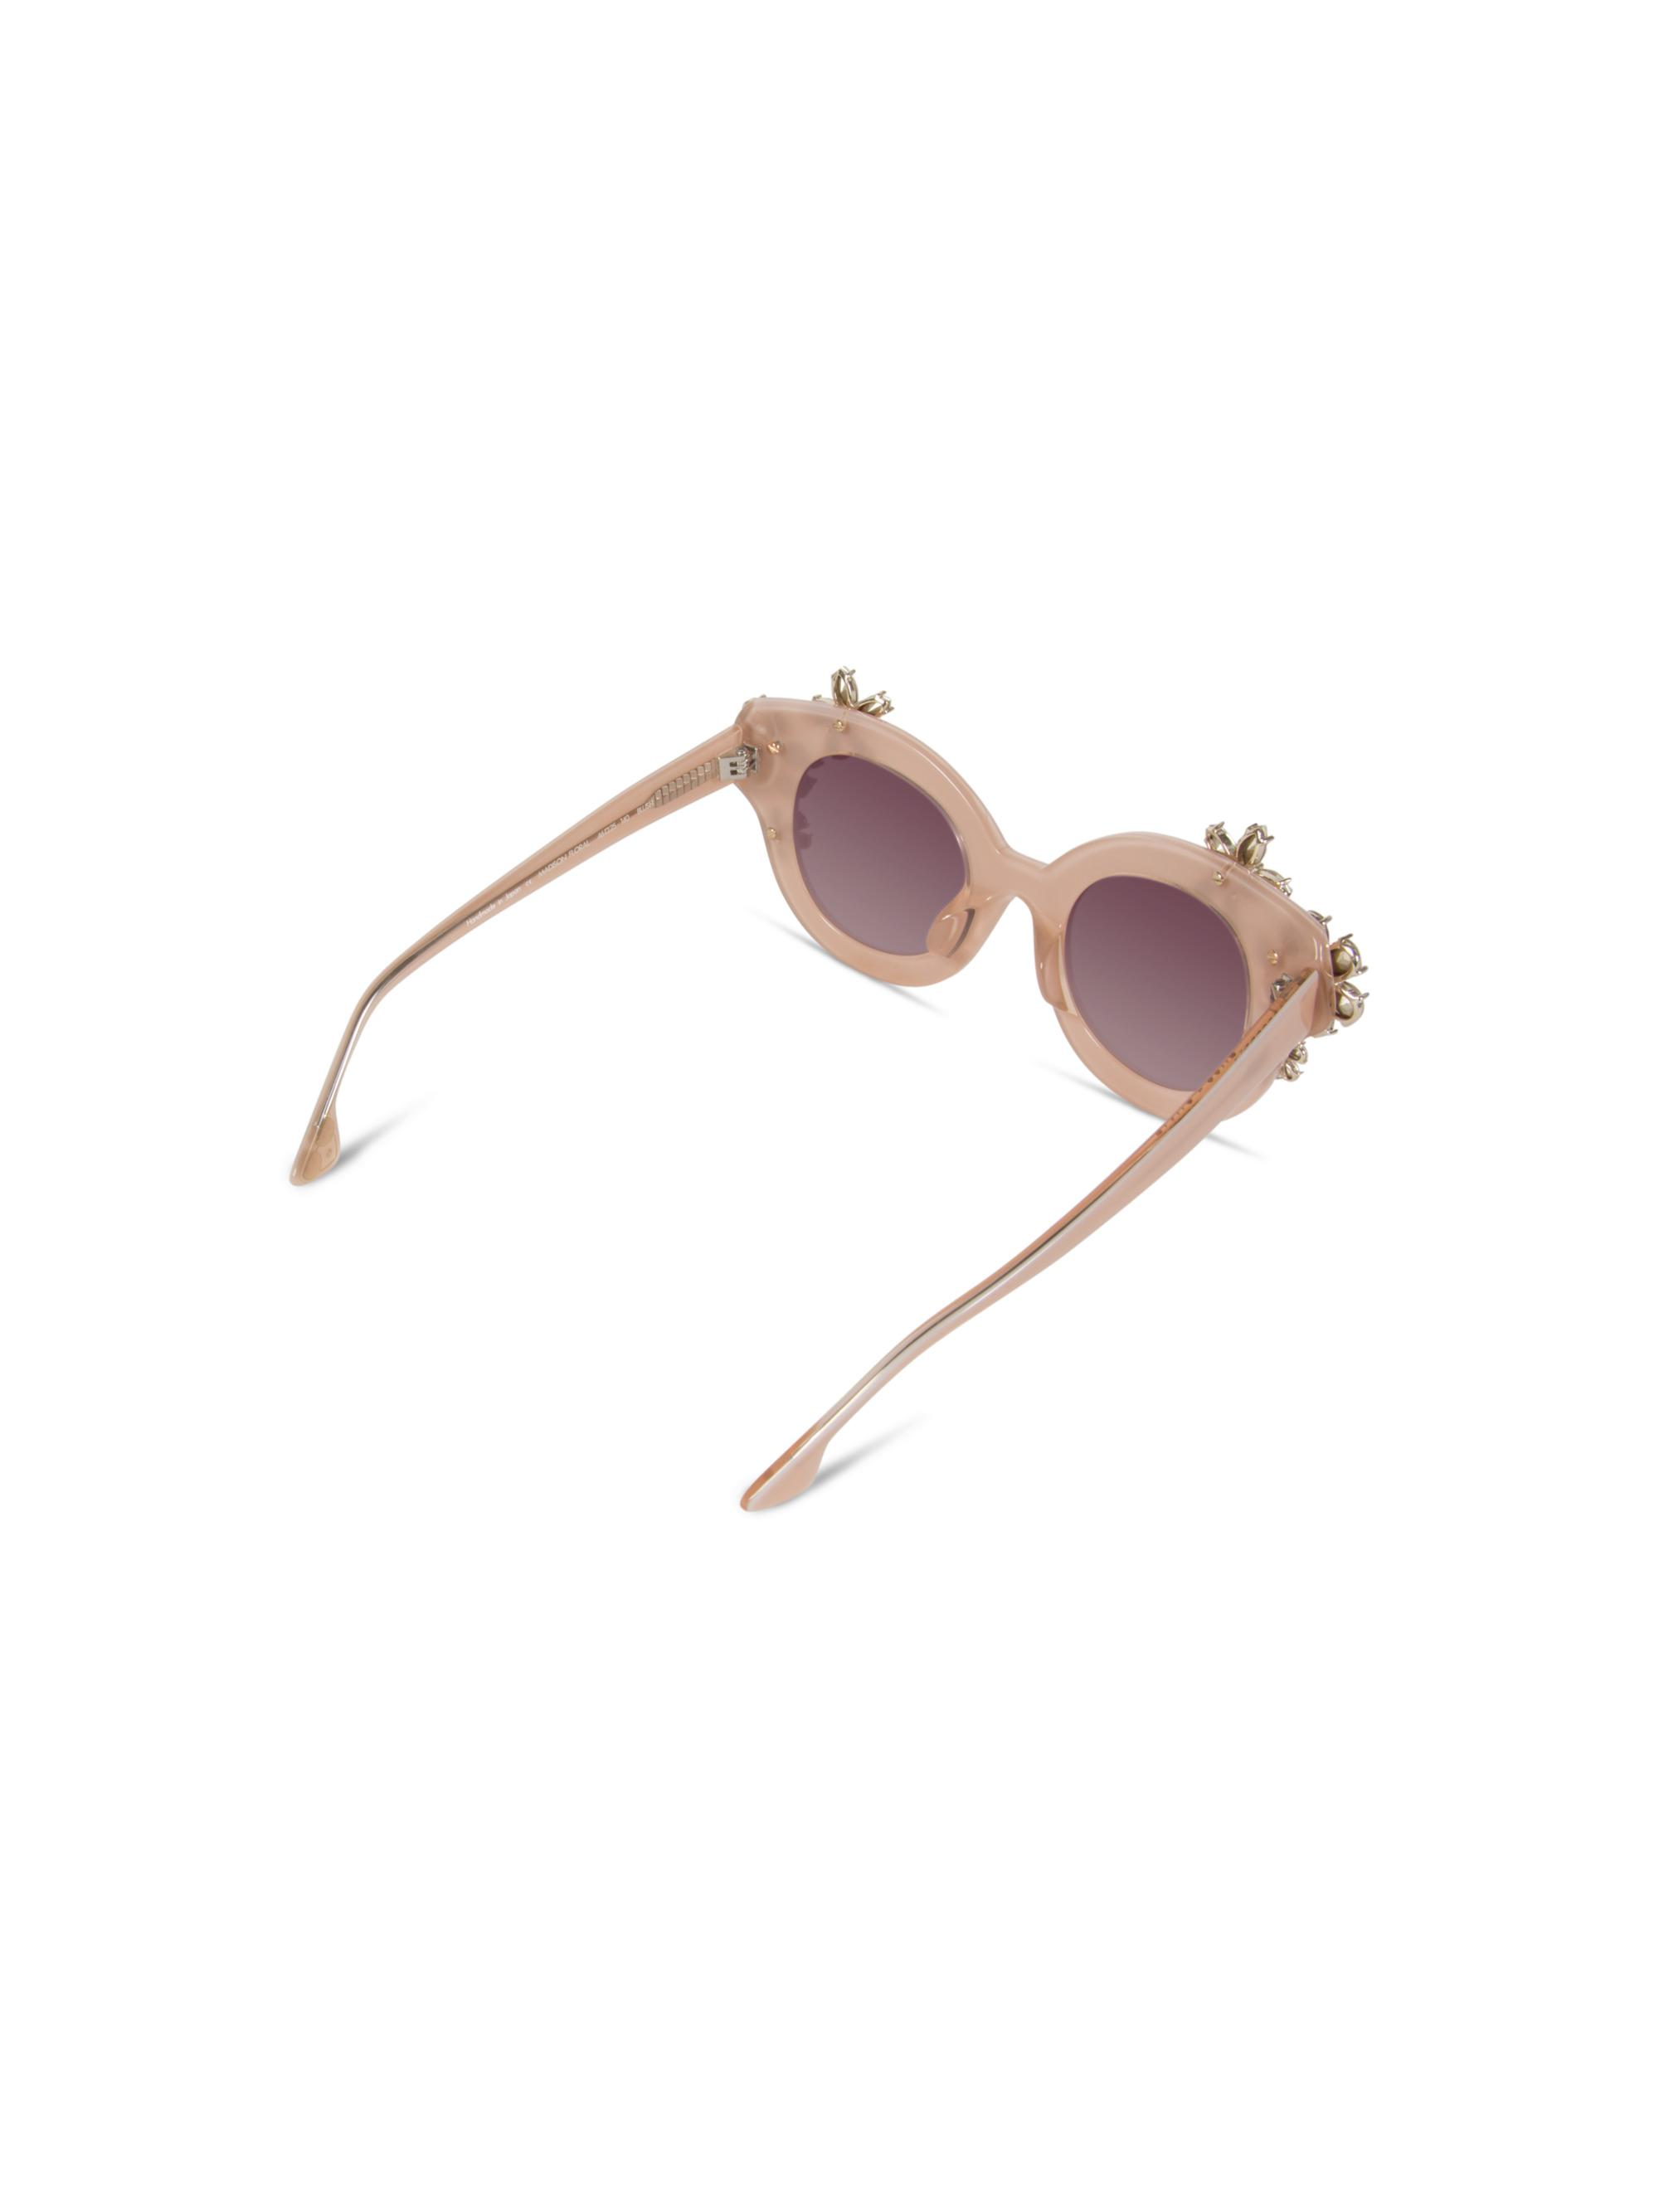 Alice + Olivia Madison Floral Sunglasses in Blush (Pink)